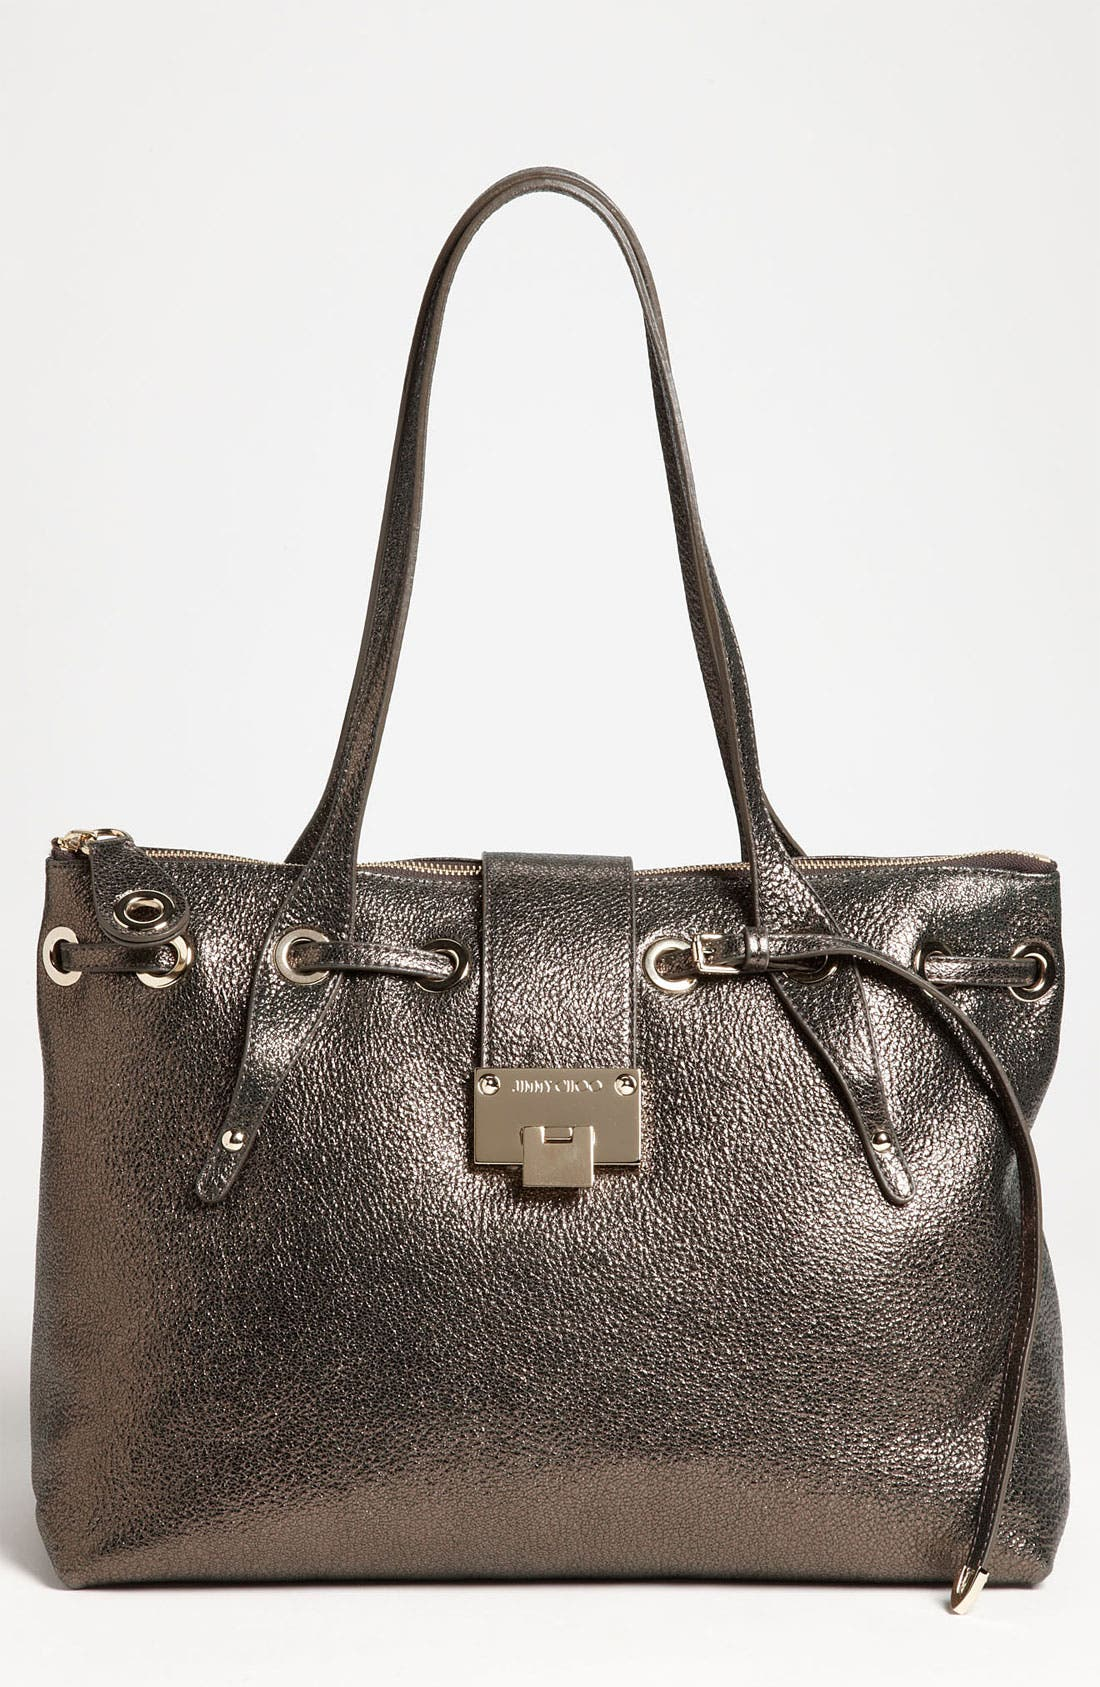 Alternate Image 1 Selected - Jimmy Choo 'Rhea' Glitter Leather Tote